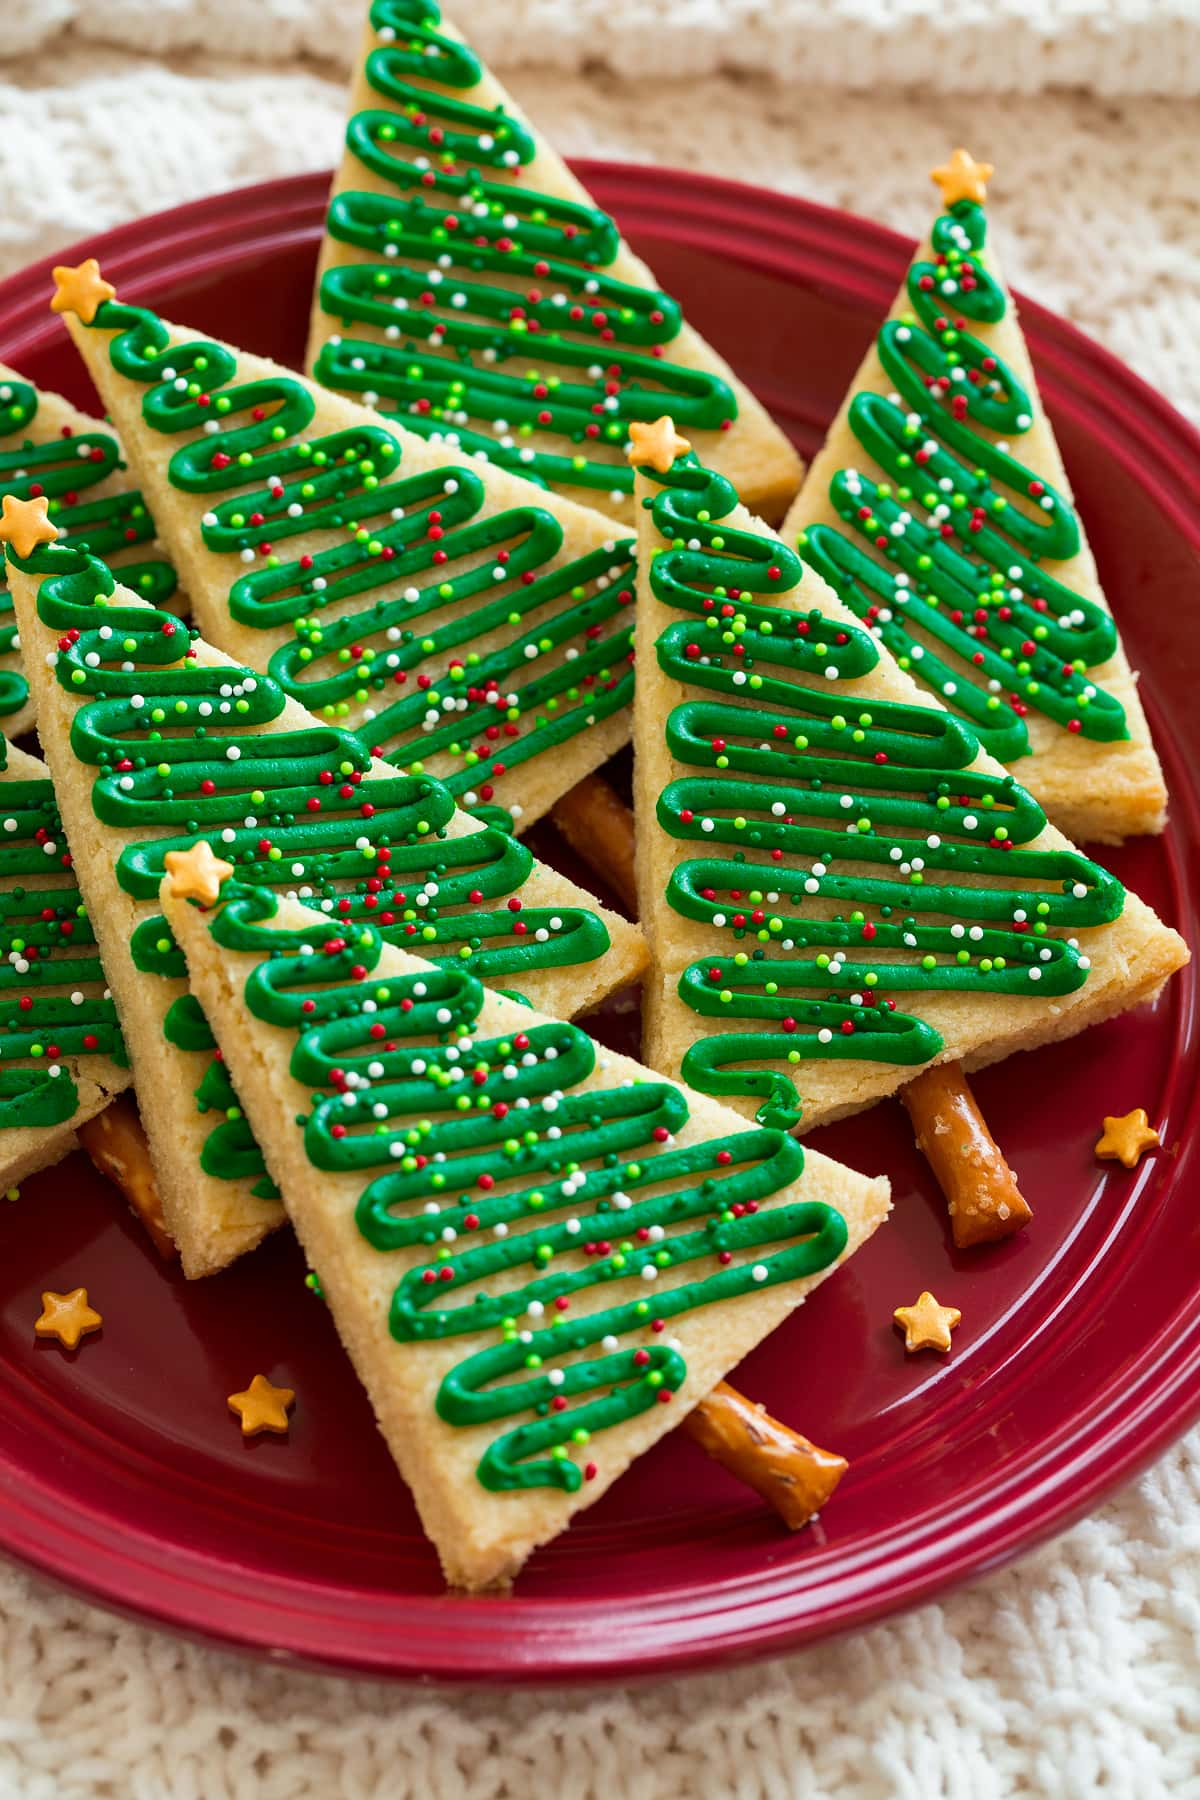 Christmas tree cookies shown on a red plate.